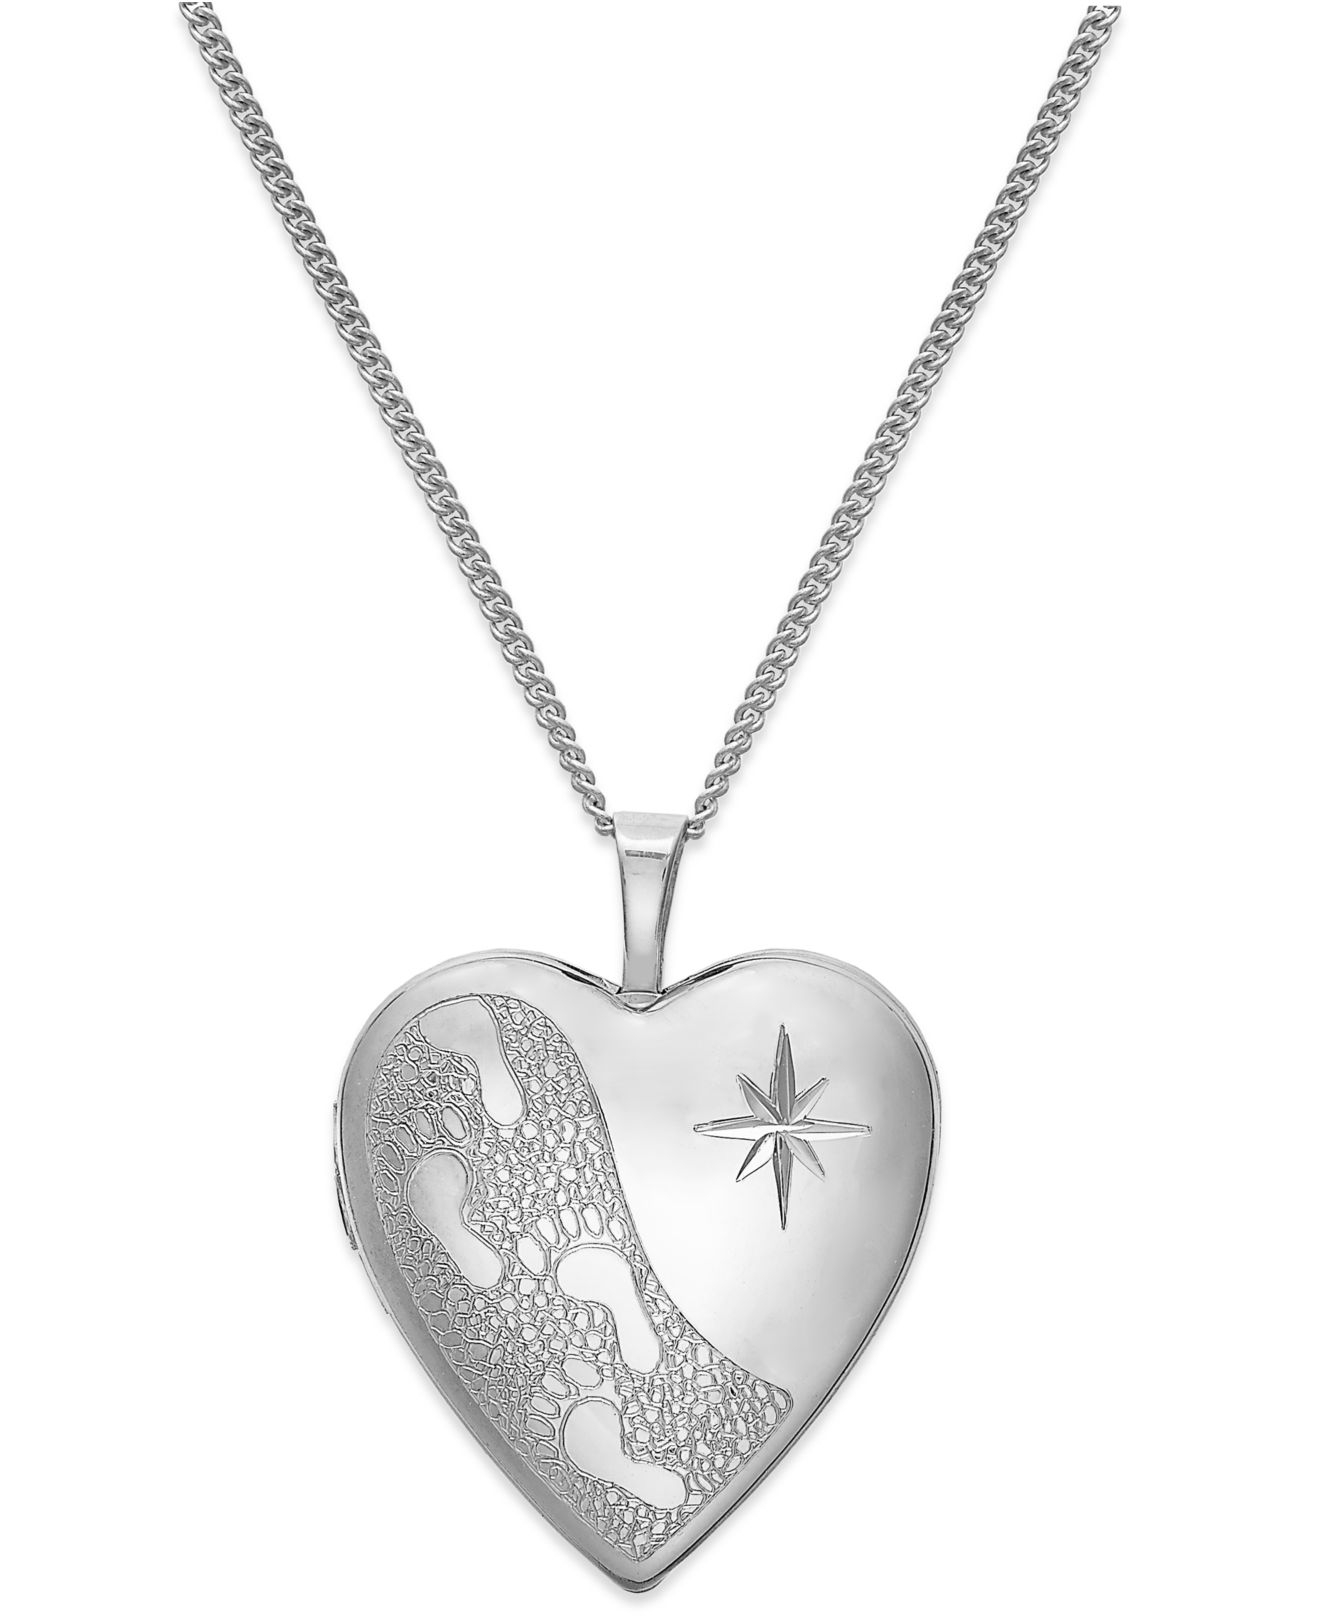 Macy's Footprints In The Sand Engraved Heart Locket. Easter Necklace. Unset Diamond. Orchid Earrings. Channel Set Wedding Rings. Huge Diamond Rings. Pearl Bracelet. Motocross Watches. Promotional Bracelet